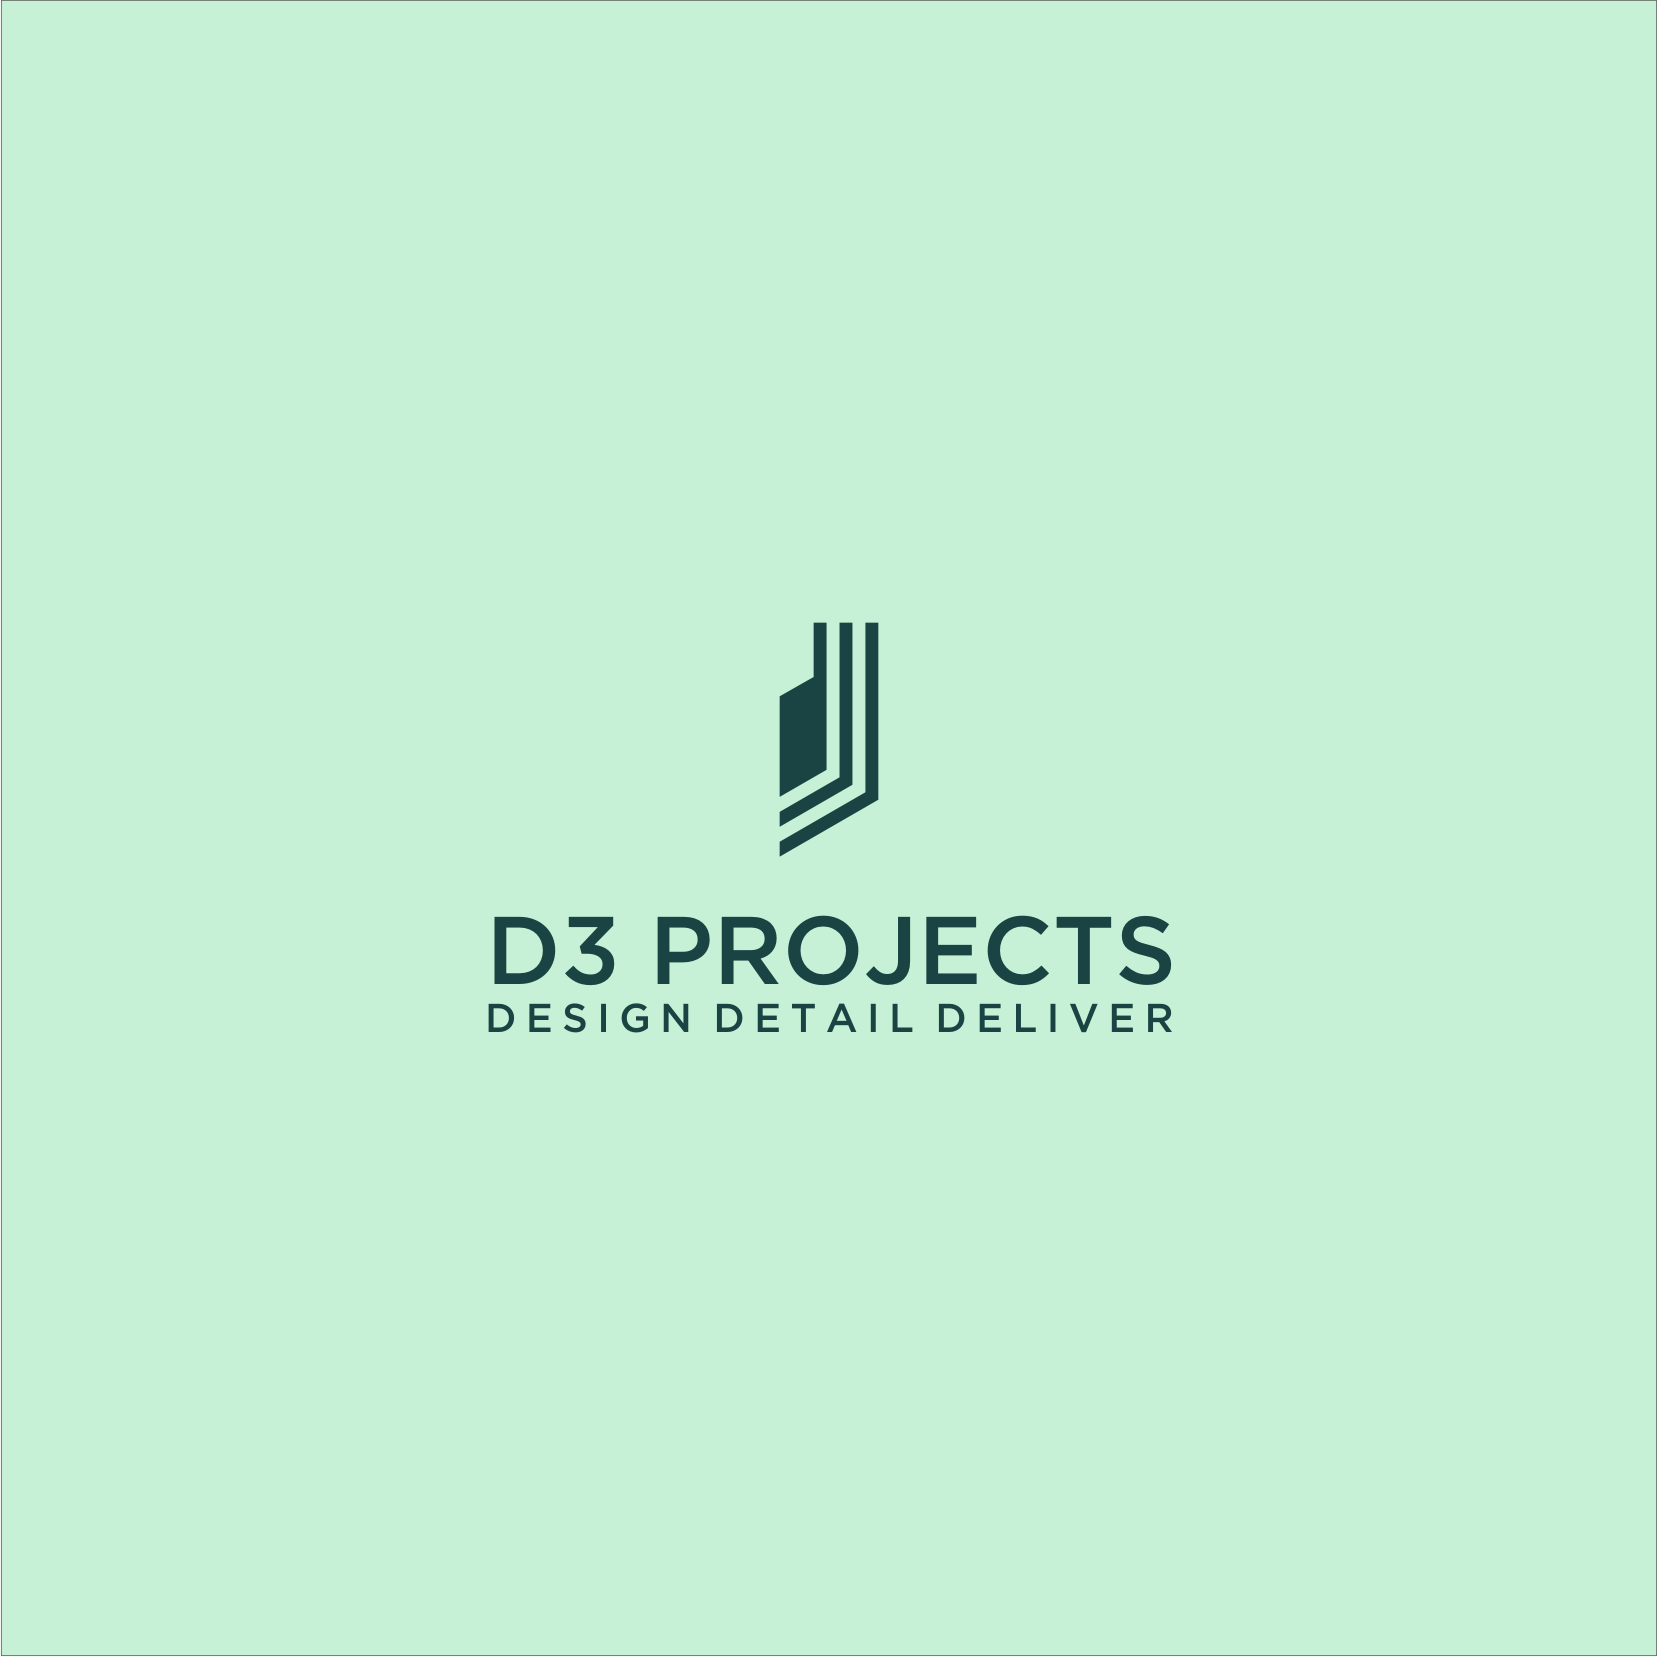 Professional Masculine Interior Design Logo Design For D3 Projects Company Name Design Detail Deliver Is Our Slogan By Ikha Asrhy Design 24058181